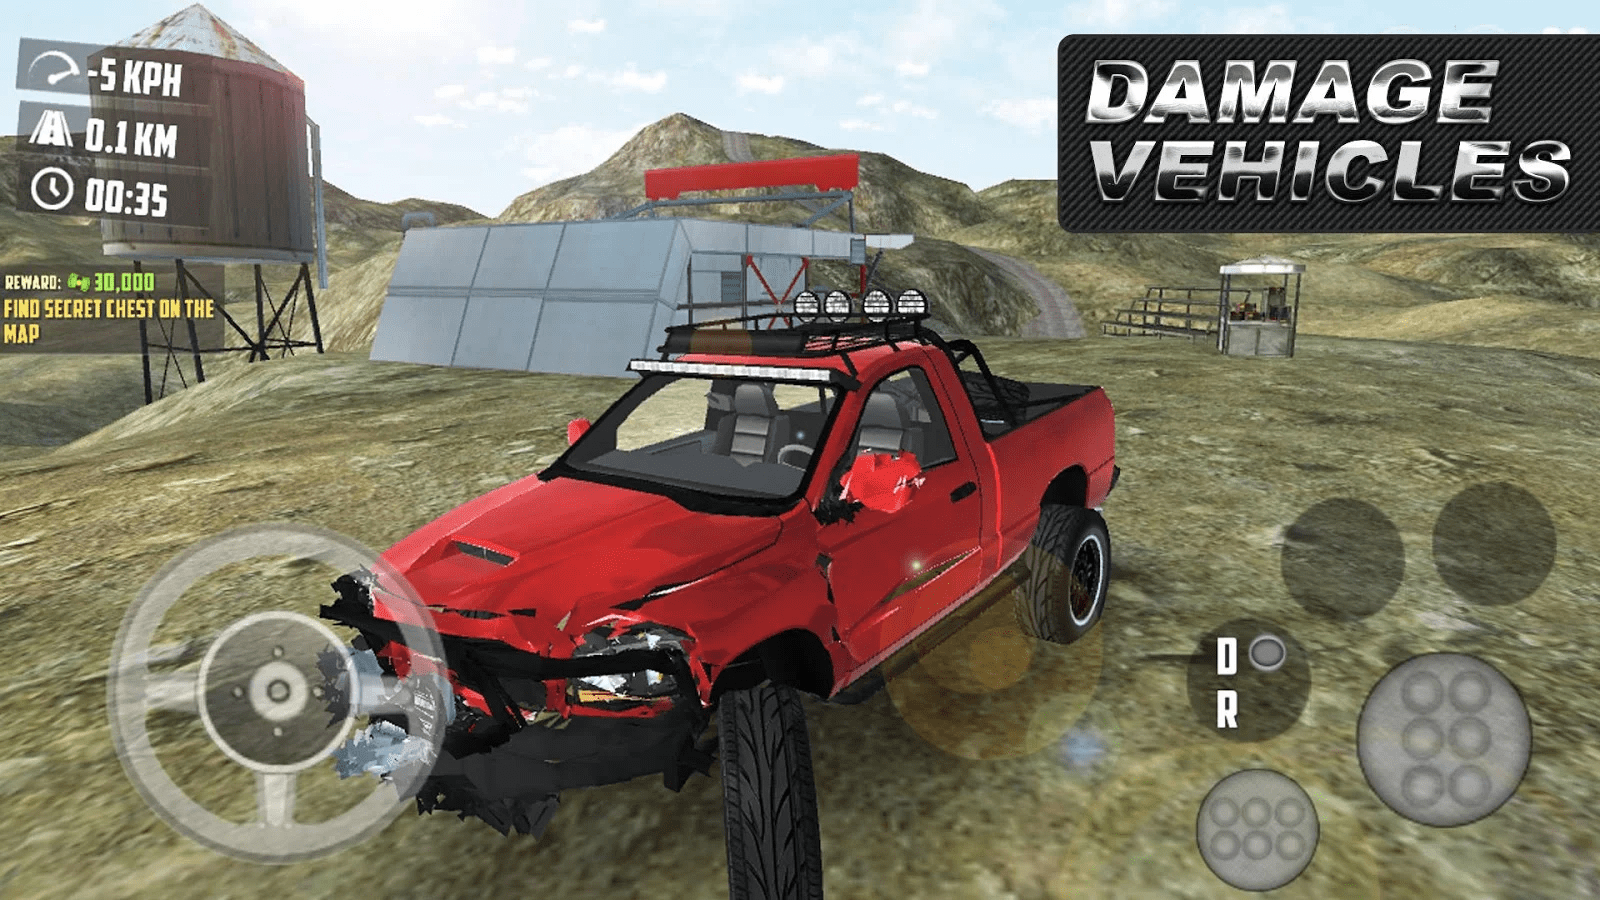 Off-road 4x4 Driving Simulator - Best Driving Simulation Games For Android 2018